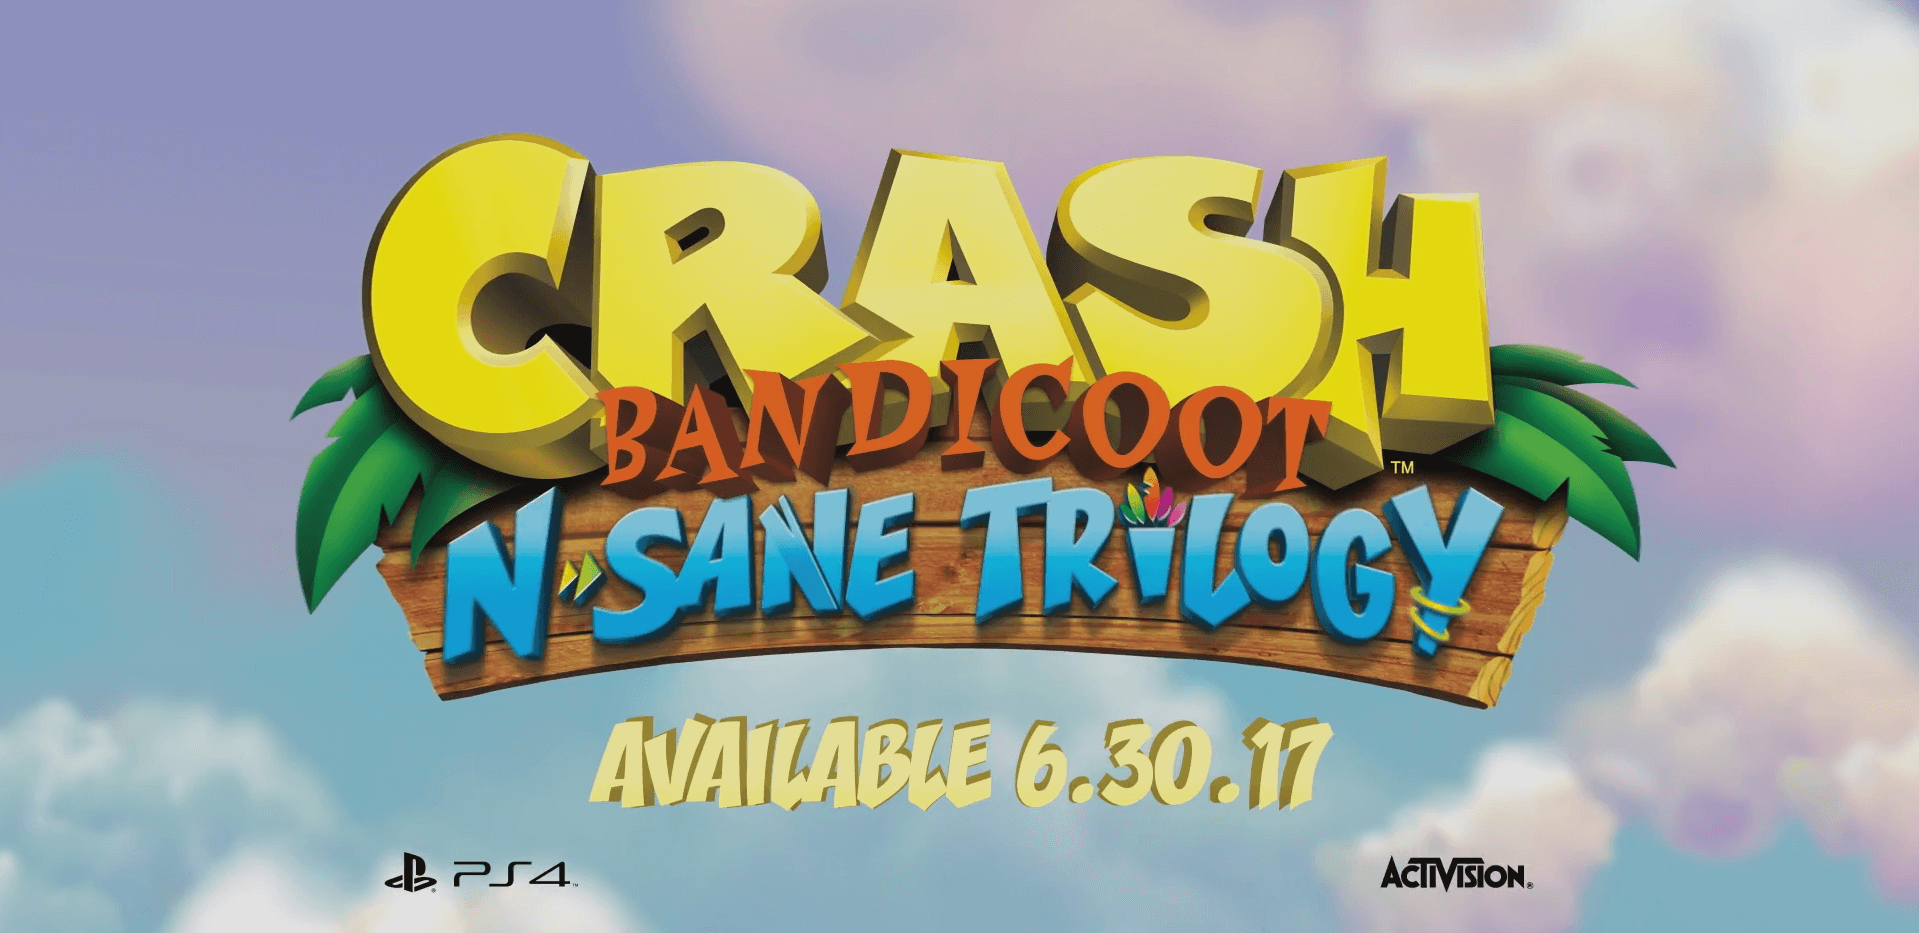 Crash Bandicoot N. Sane Trilogy Release Date